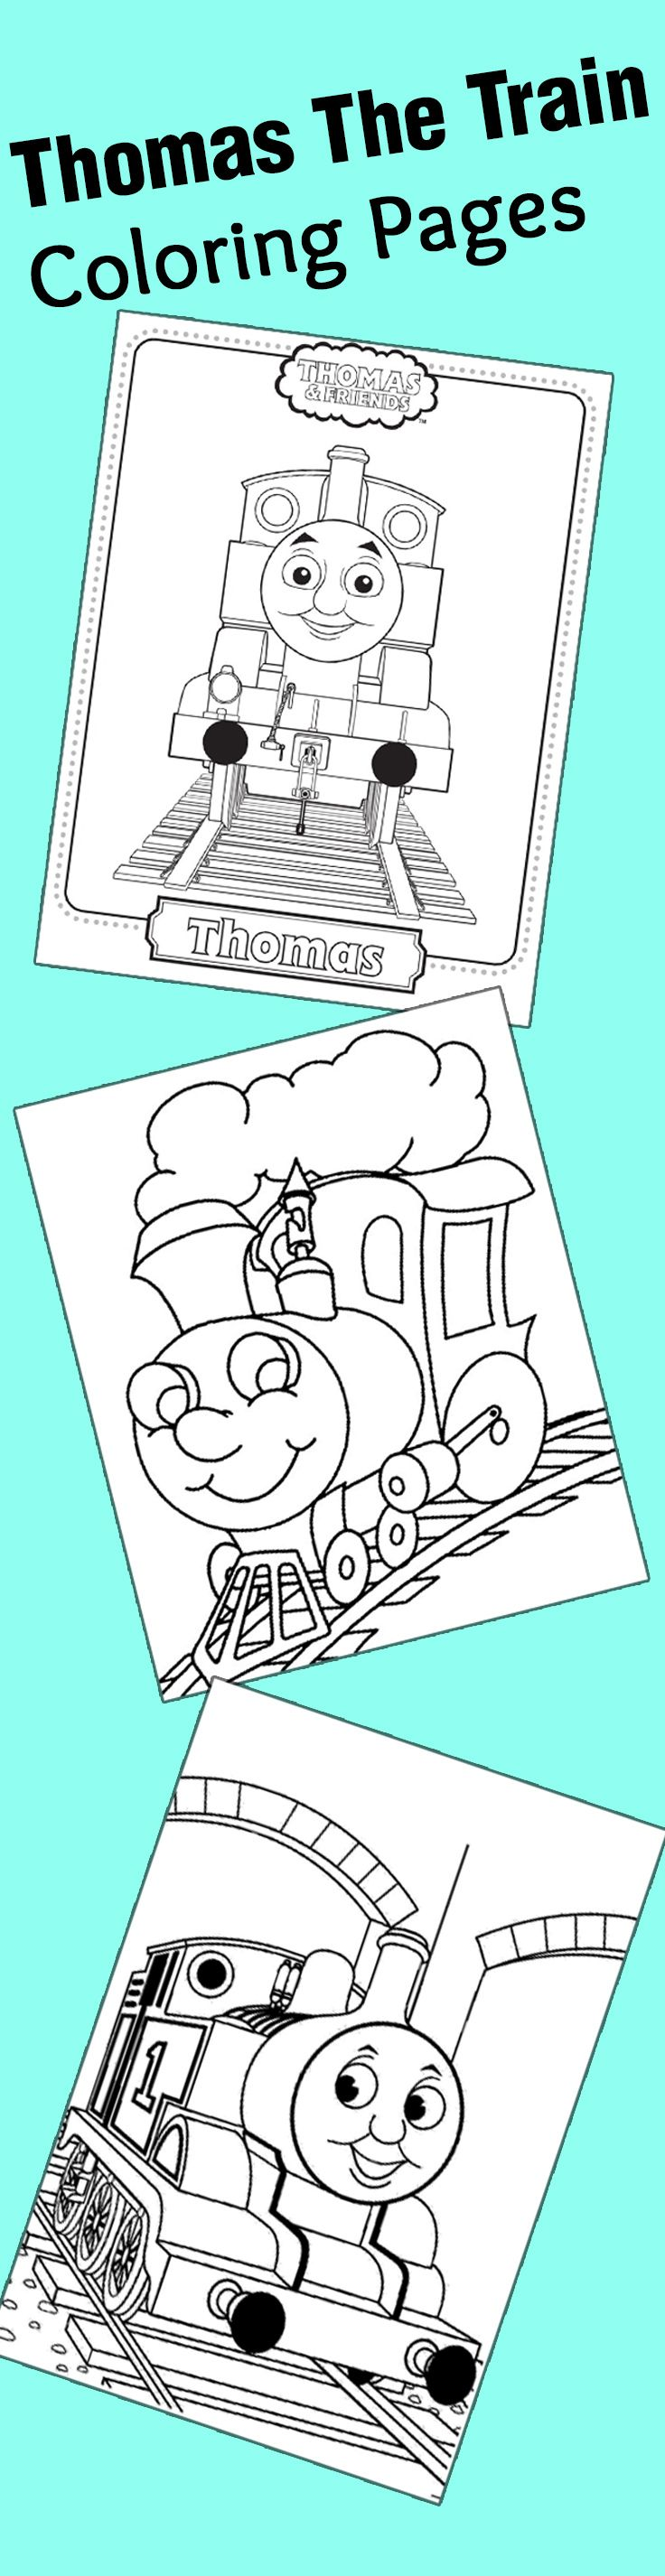 Top 20 Free Printable Thomas The Train Coloring Pages line